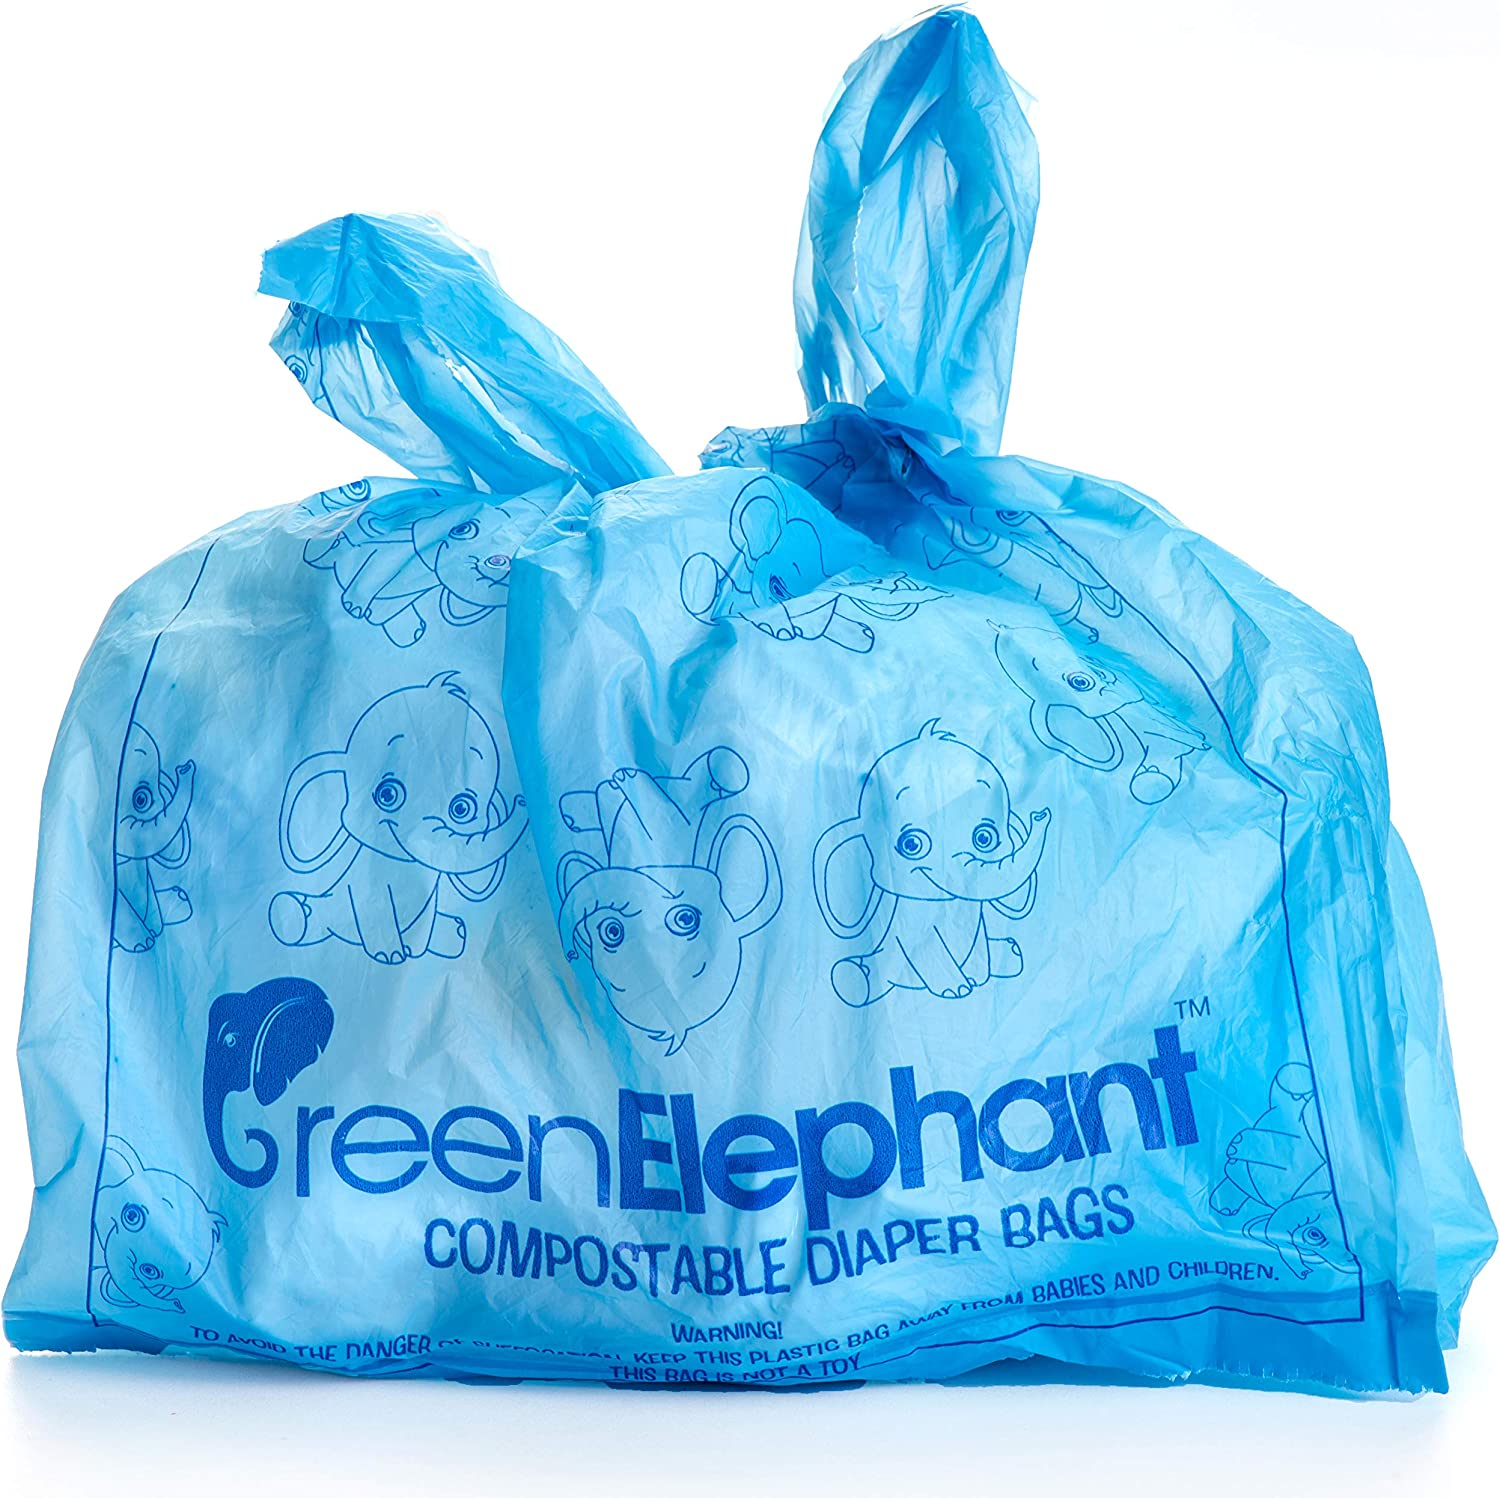 Green Elephant Diaper Bags Disposable   Compostable Diaper Sacks 108 Count   Biodegradable Eco-friendly Easy-to-tie Diaper Trash Bag   Set of 2 Rolls